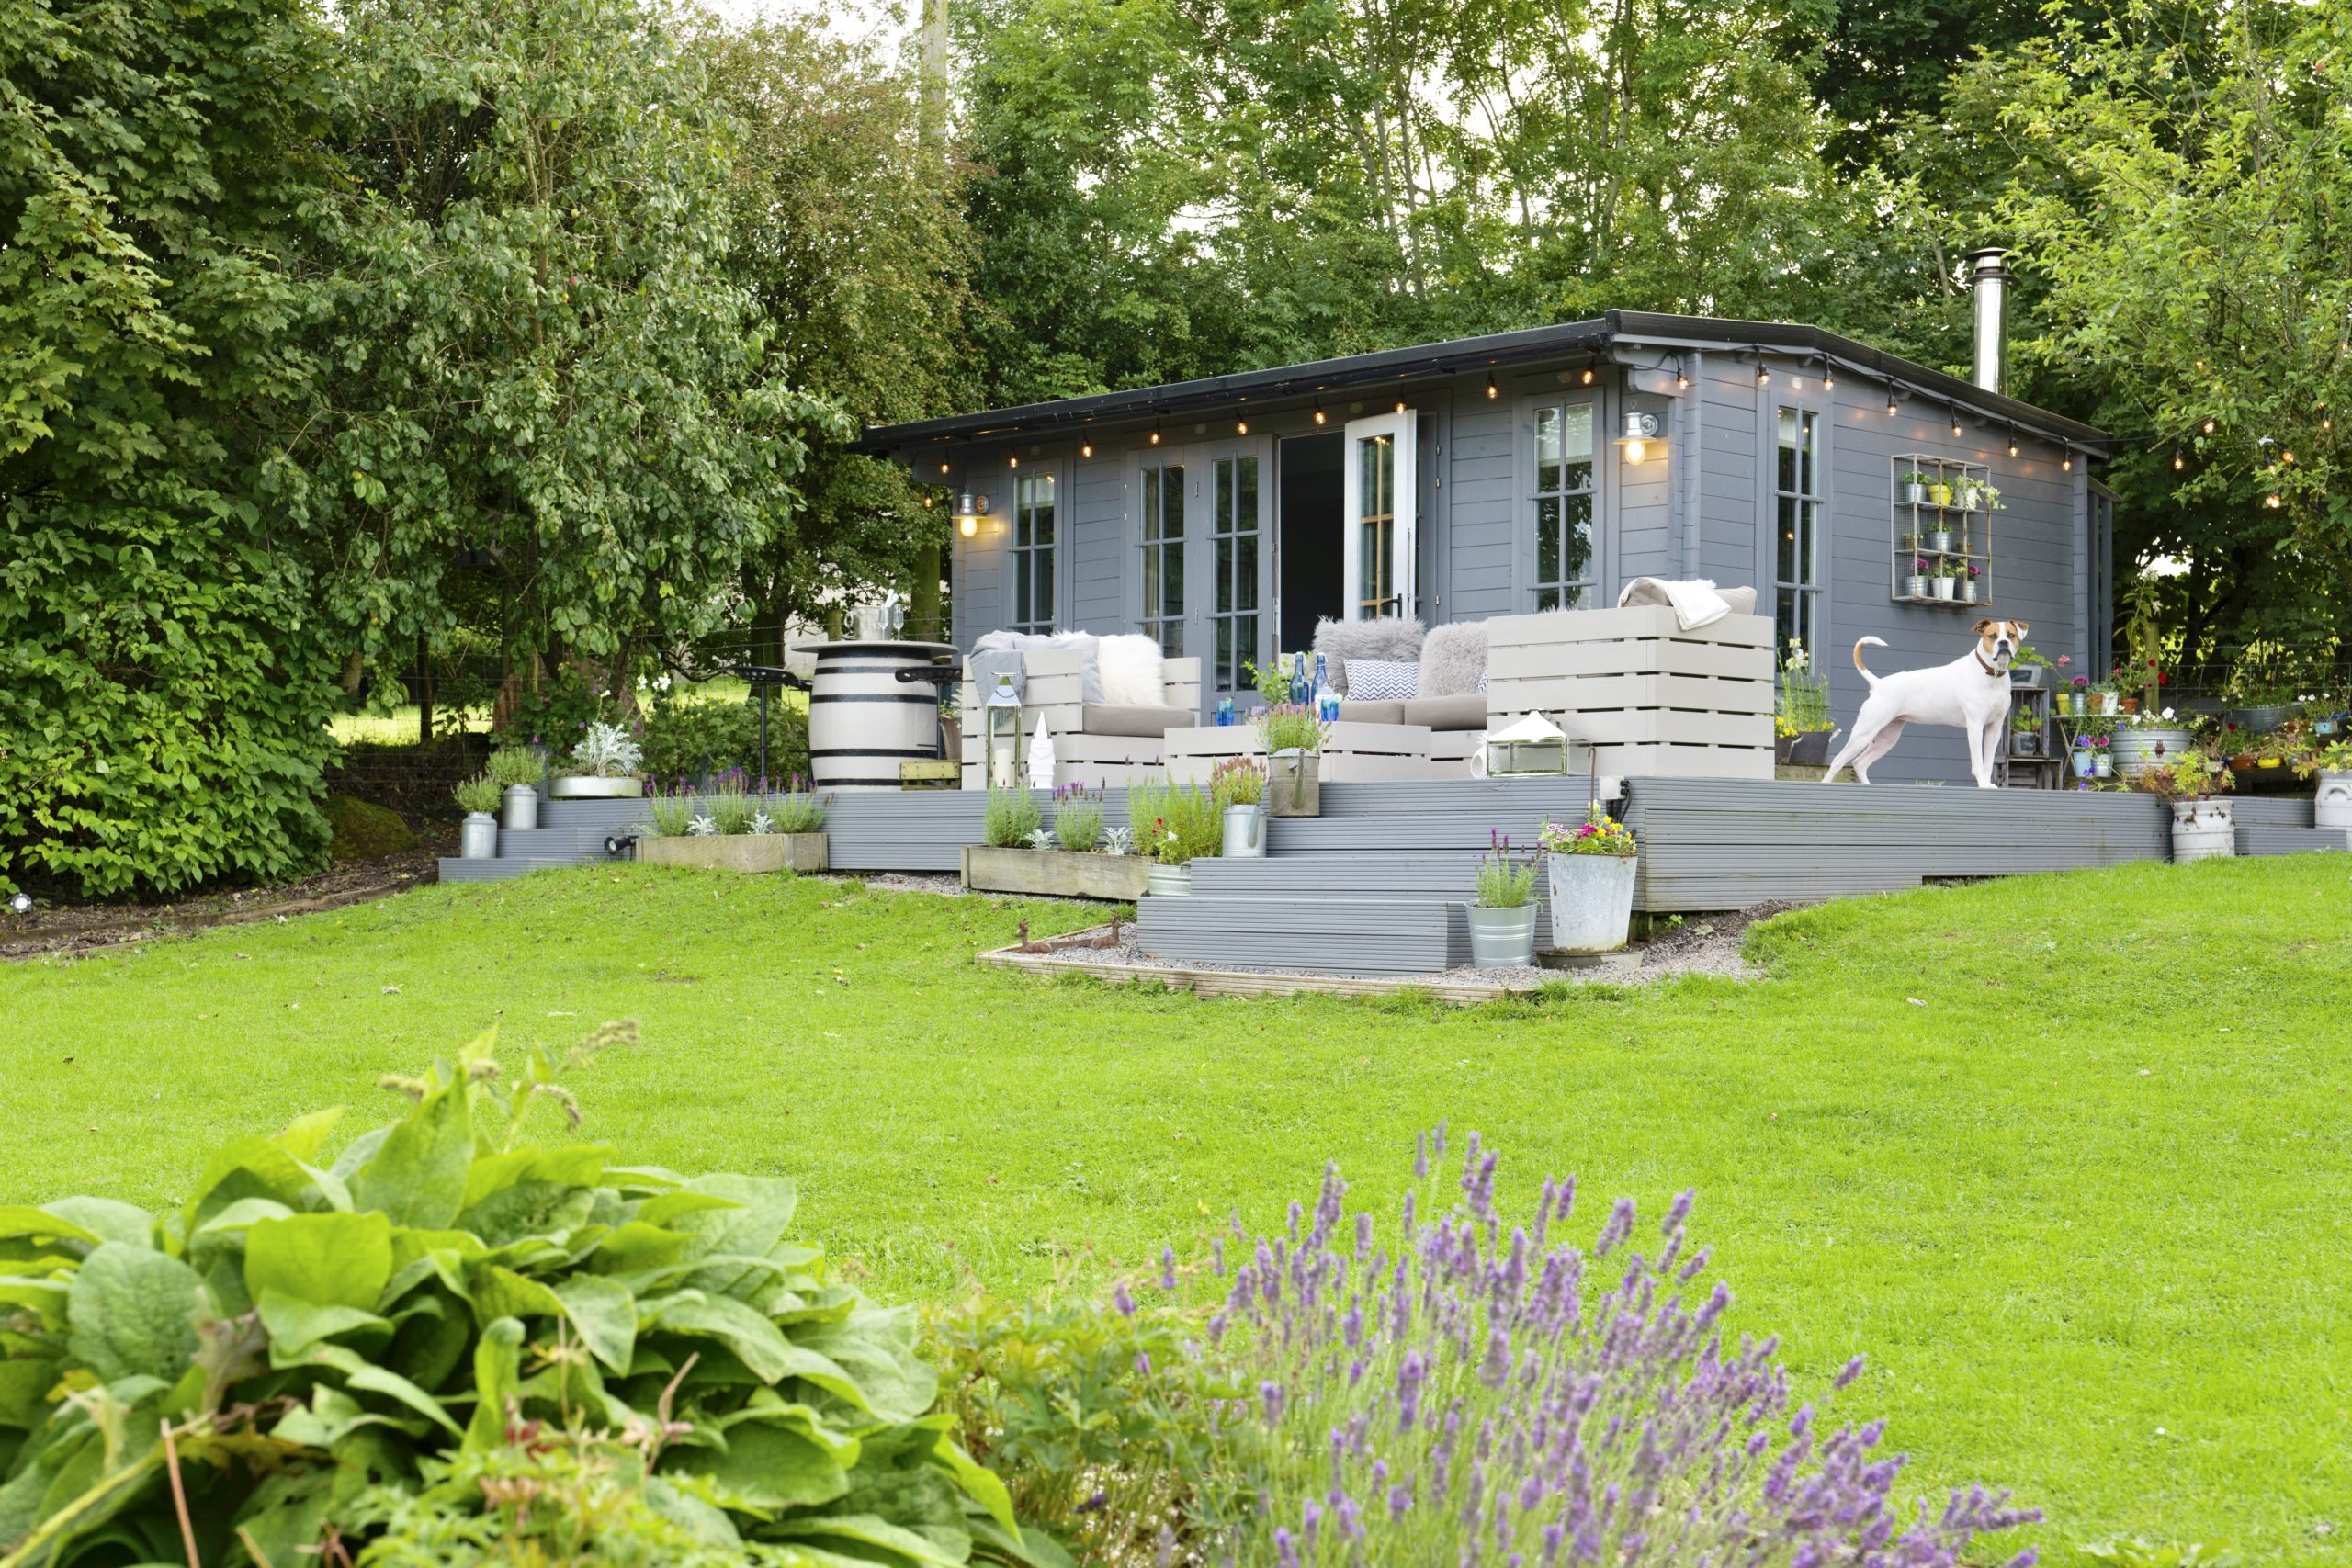 Nordic scandinavian summerhouse and outdoor kitchen designed by Amelia Wilson